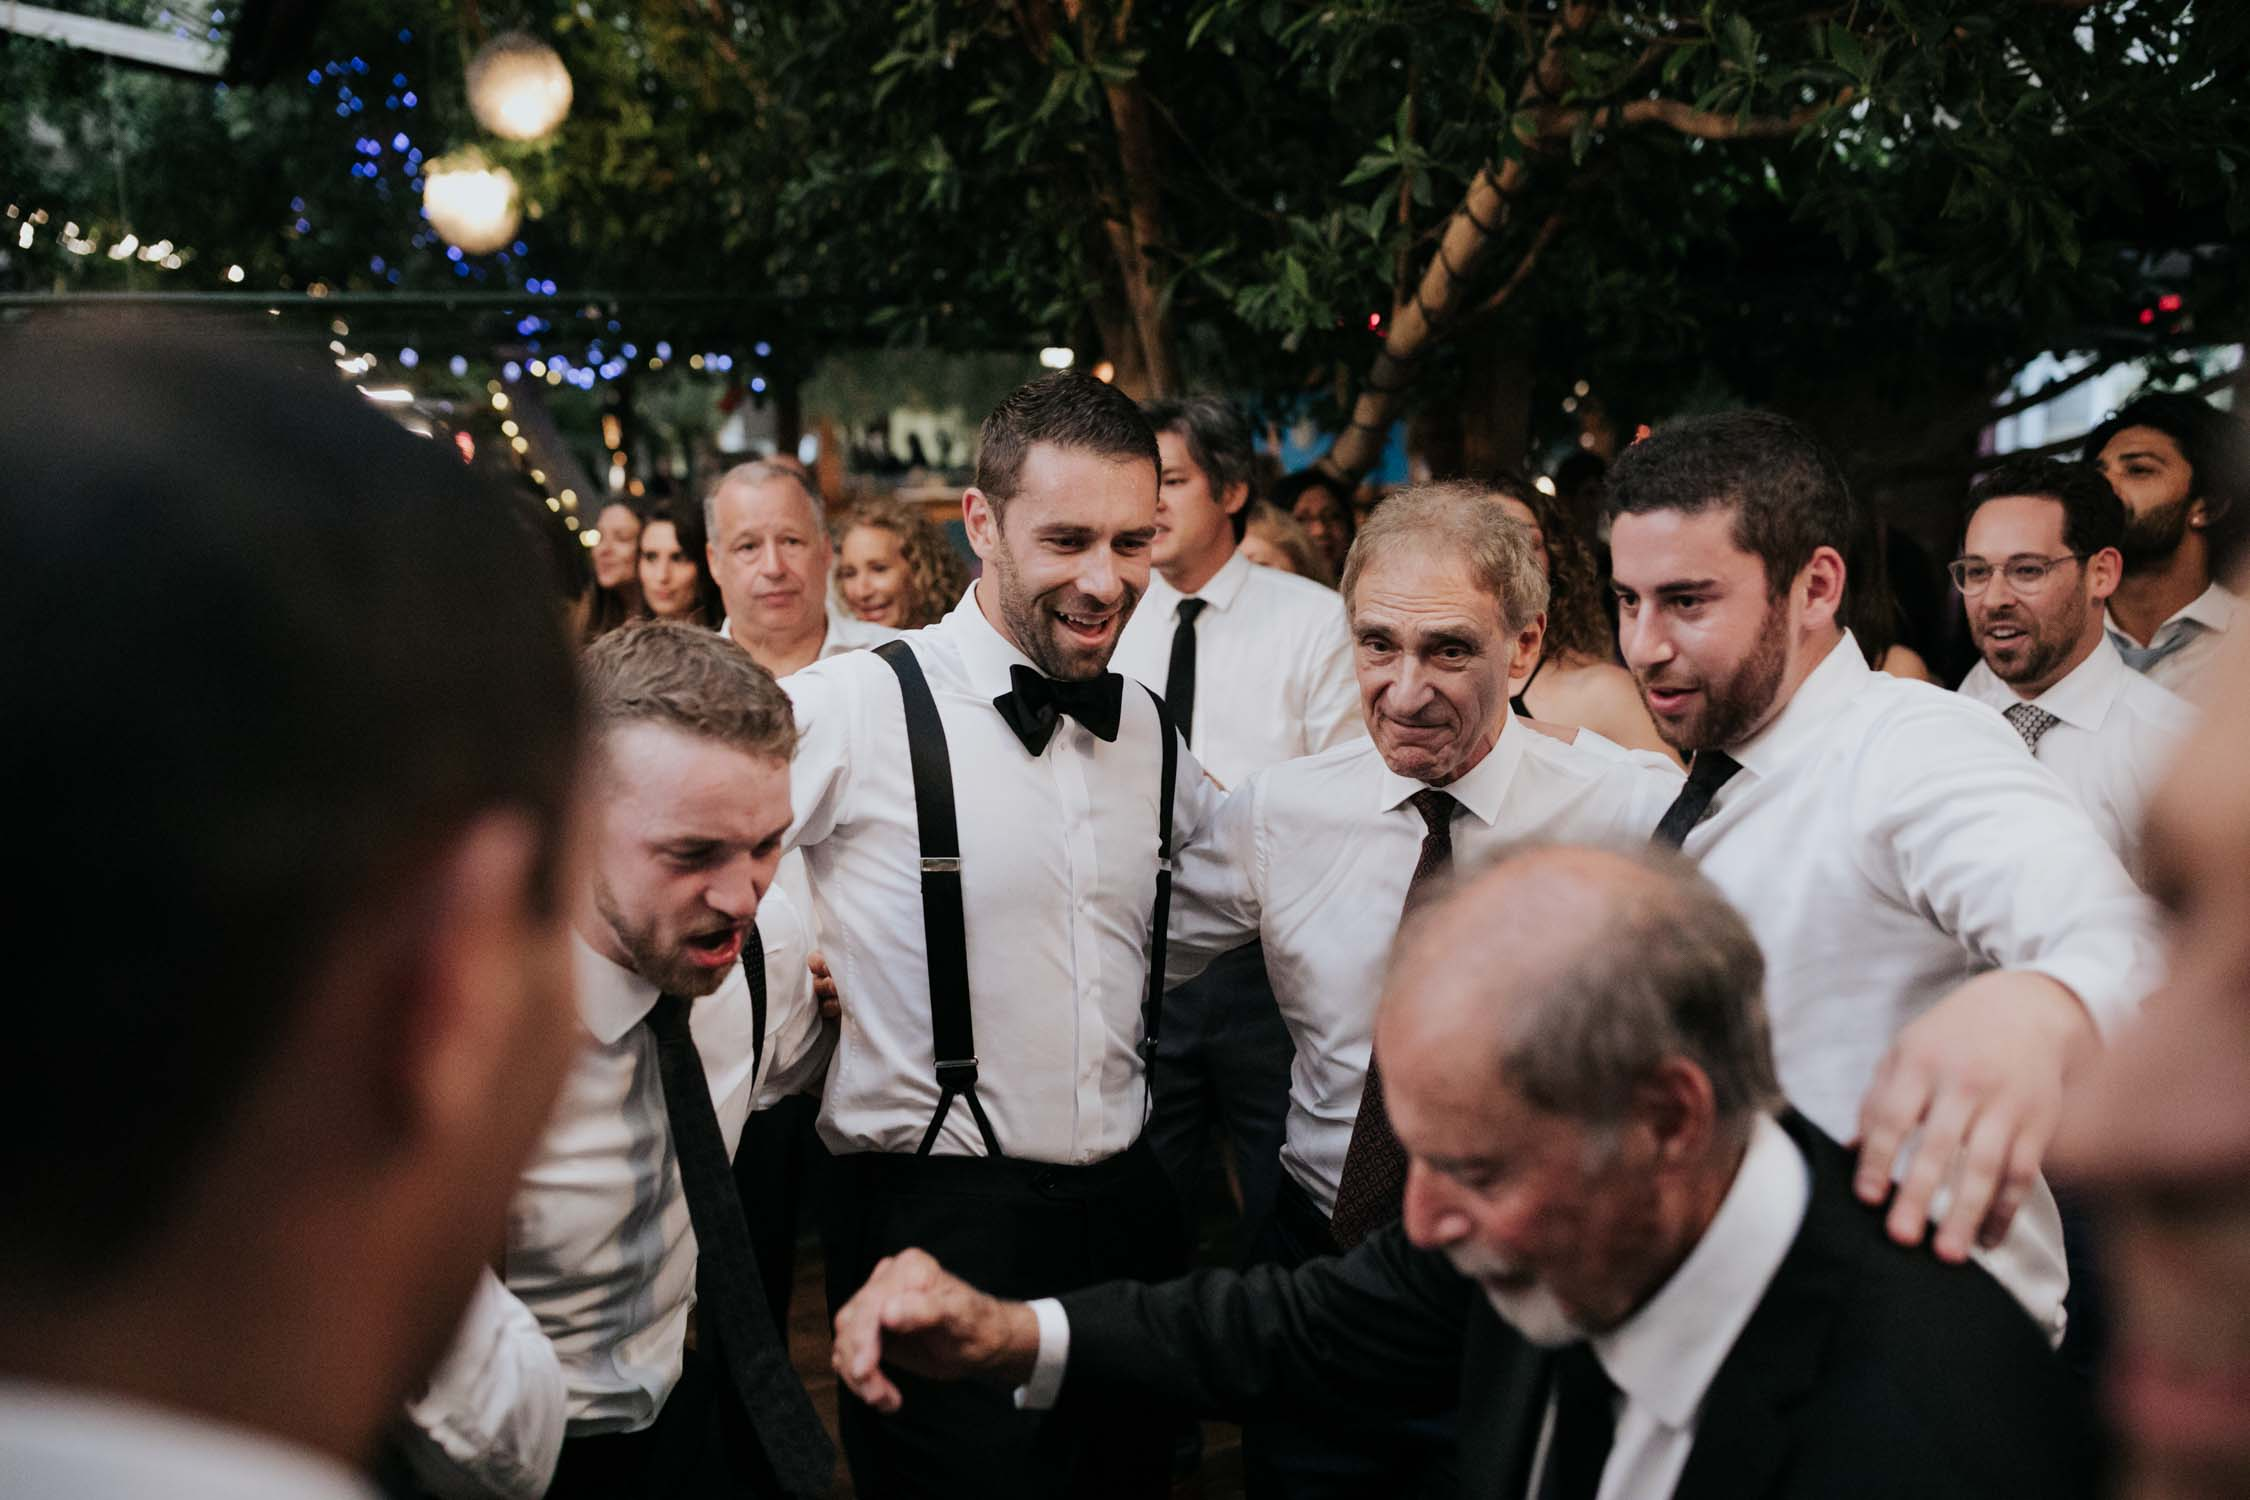 Horas and fun dancing photos at Groom portrait at Madsen's Greenhouse wedding venue in Newmarket close to Toronto